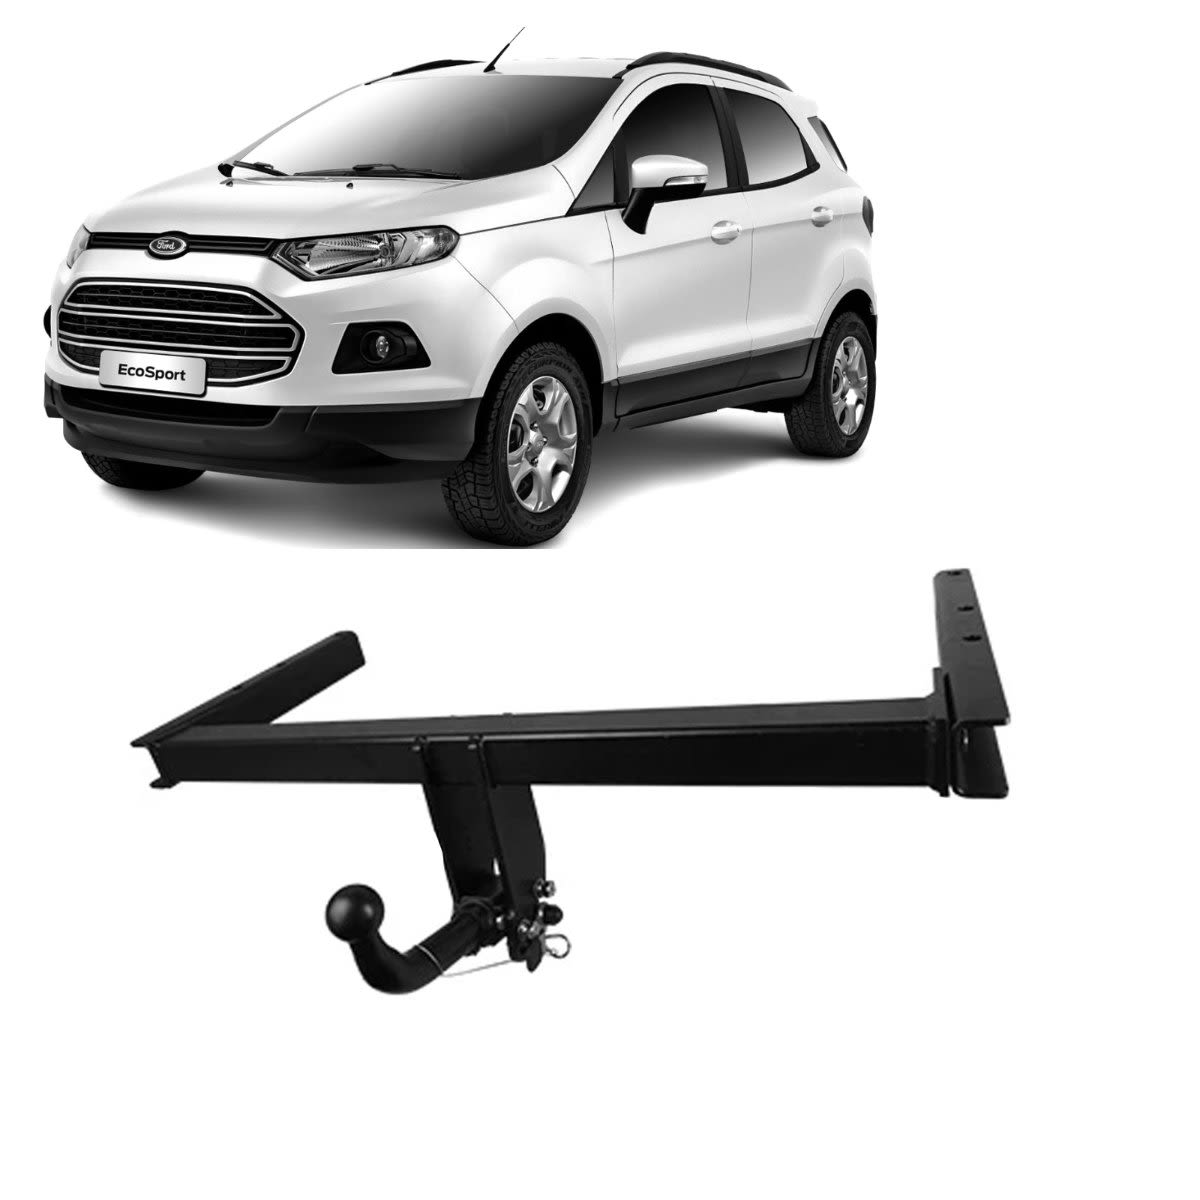 TAG Euro Towbars European Style Tongue to suit Ford ECOSPORT (12/2017 - on)